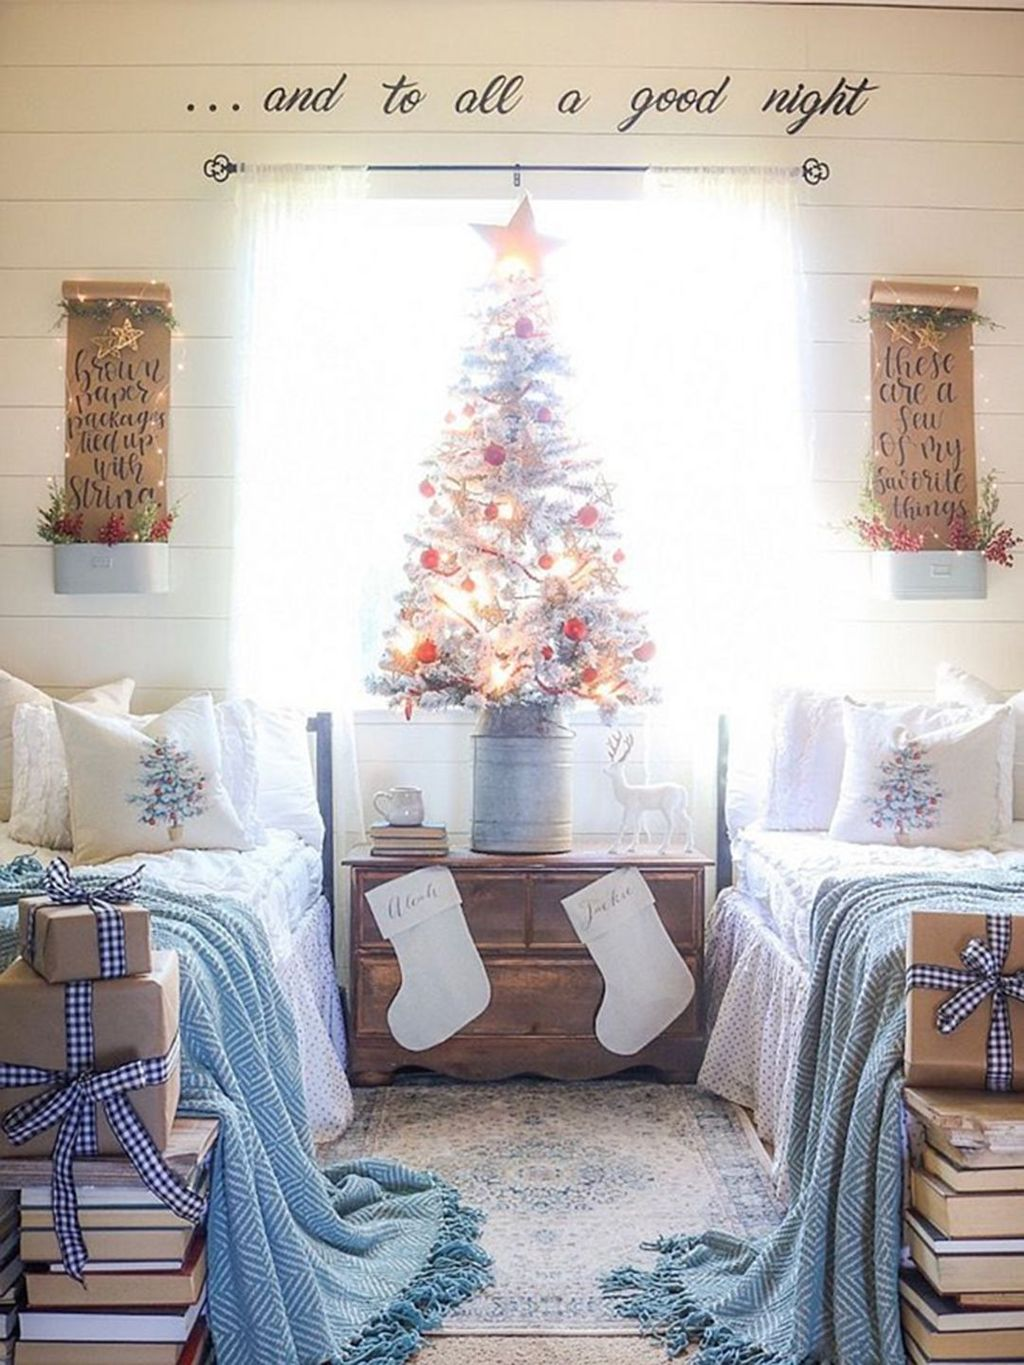 Lovely Christmas Kids Bedroom Decorations 02